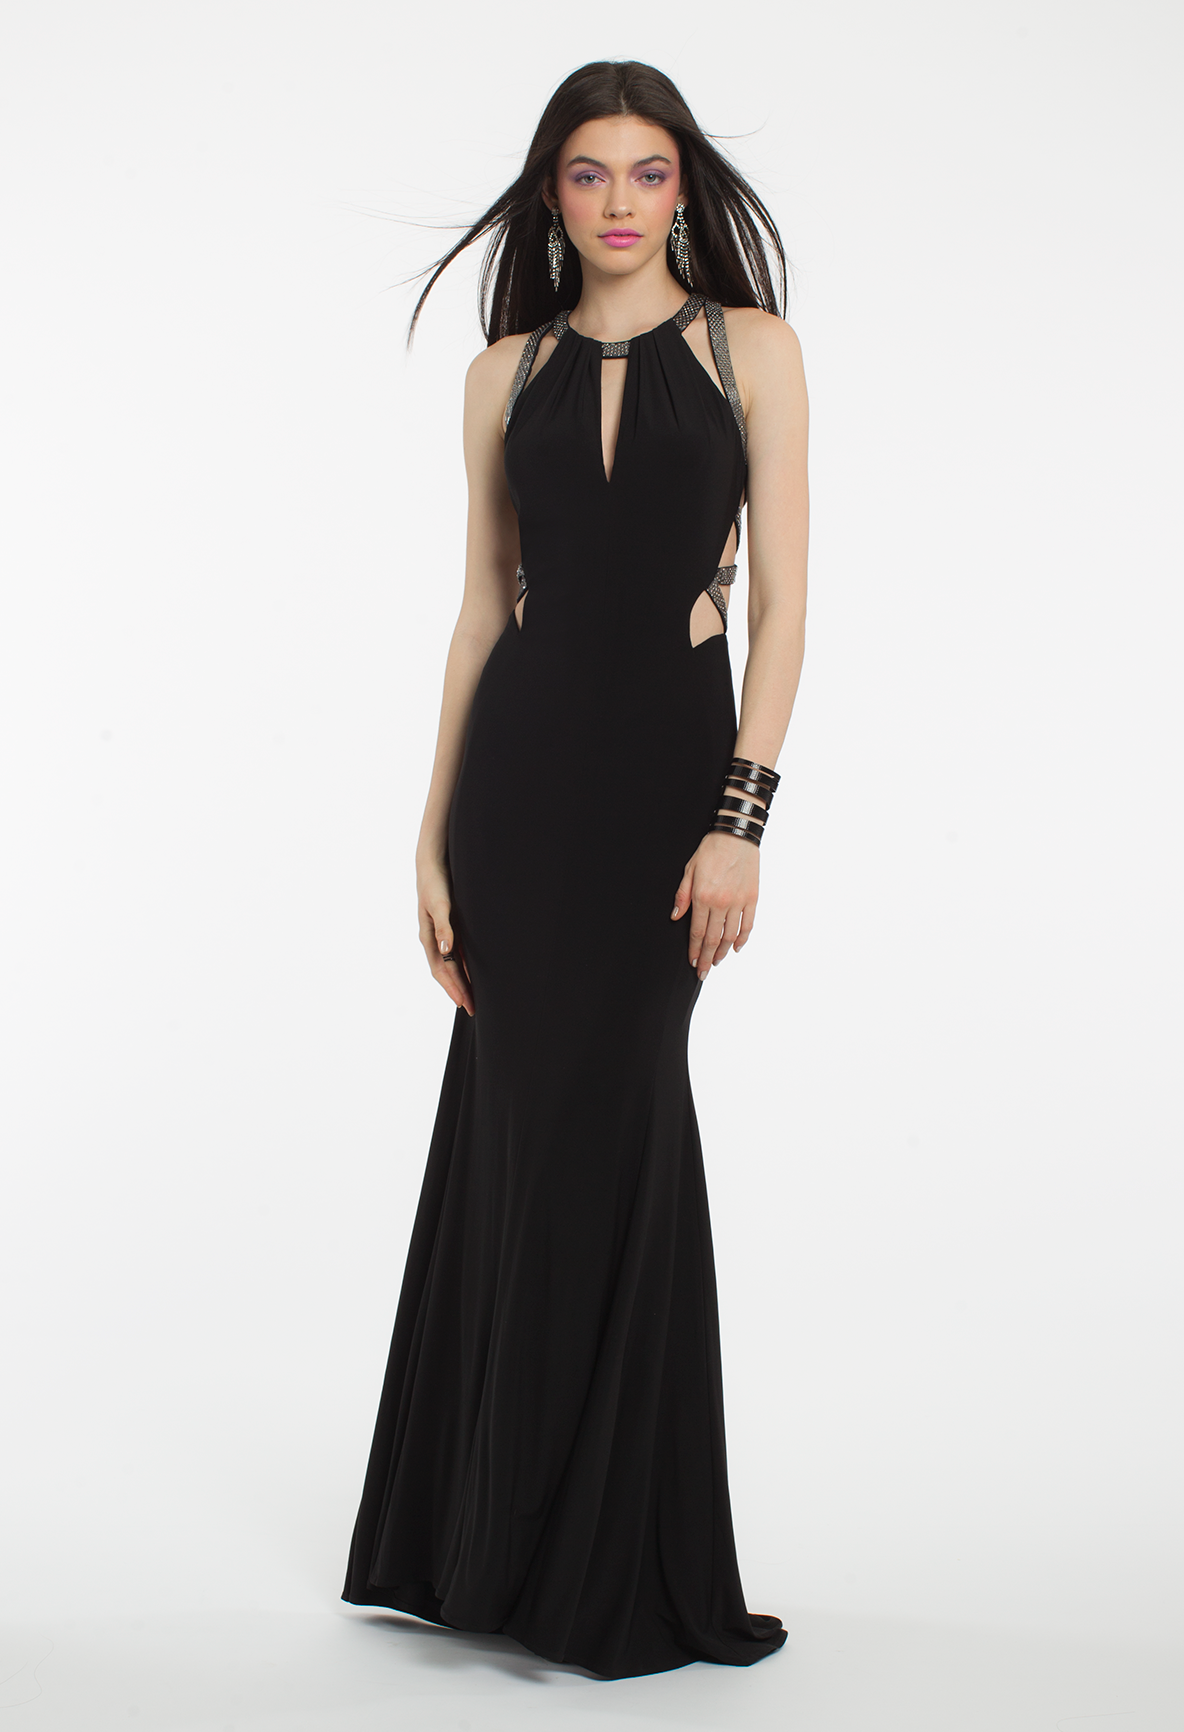 This long evening dress is exquisite from every angle the halter